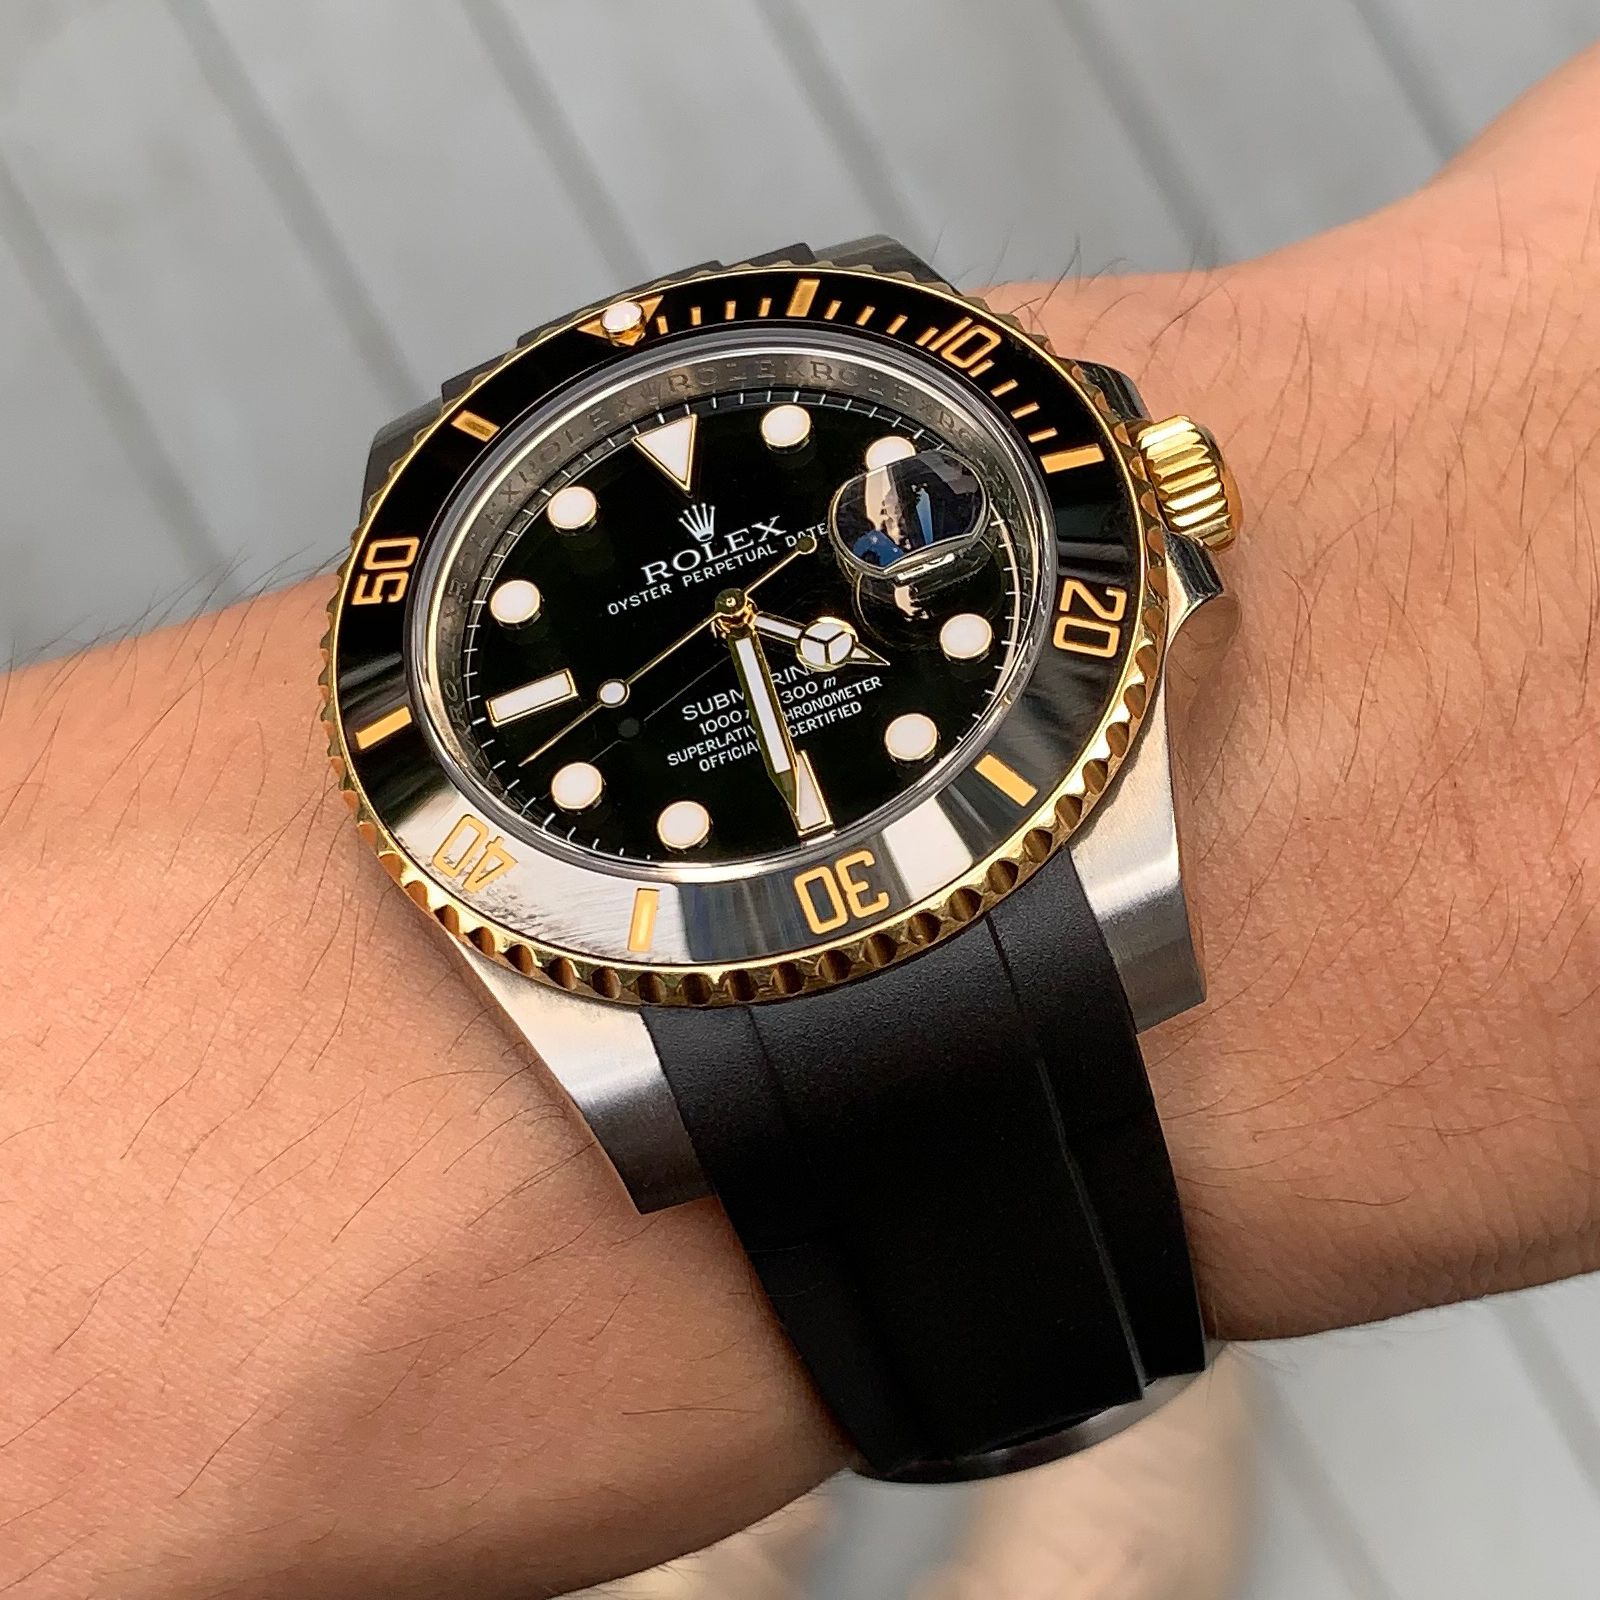 Rolex Submariner With Date Curved End Rubber Strap 6 Digits Rolex Luxury Watches For Men Rolex Submariner